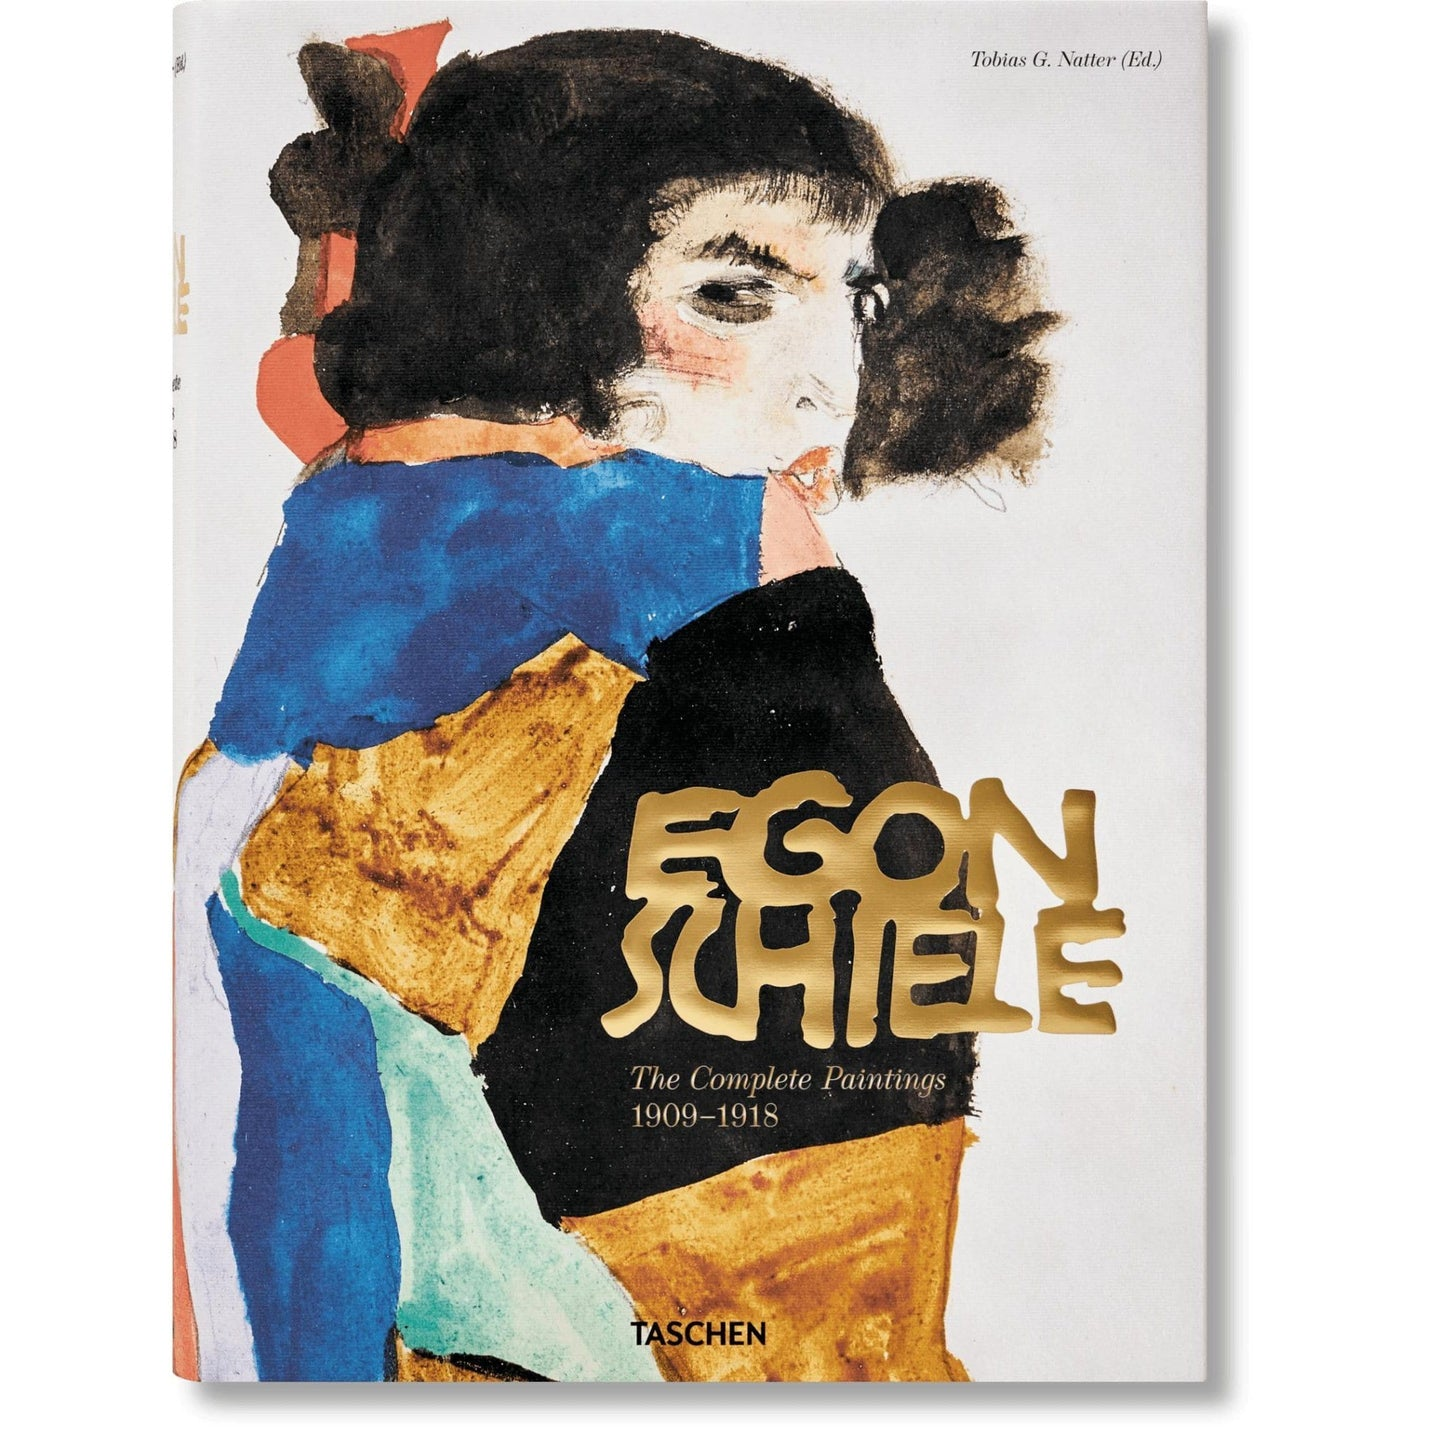 Taschen Egon Schiele. The Complete Paintings 1909–1918 / Neighborhood Goods